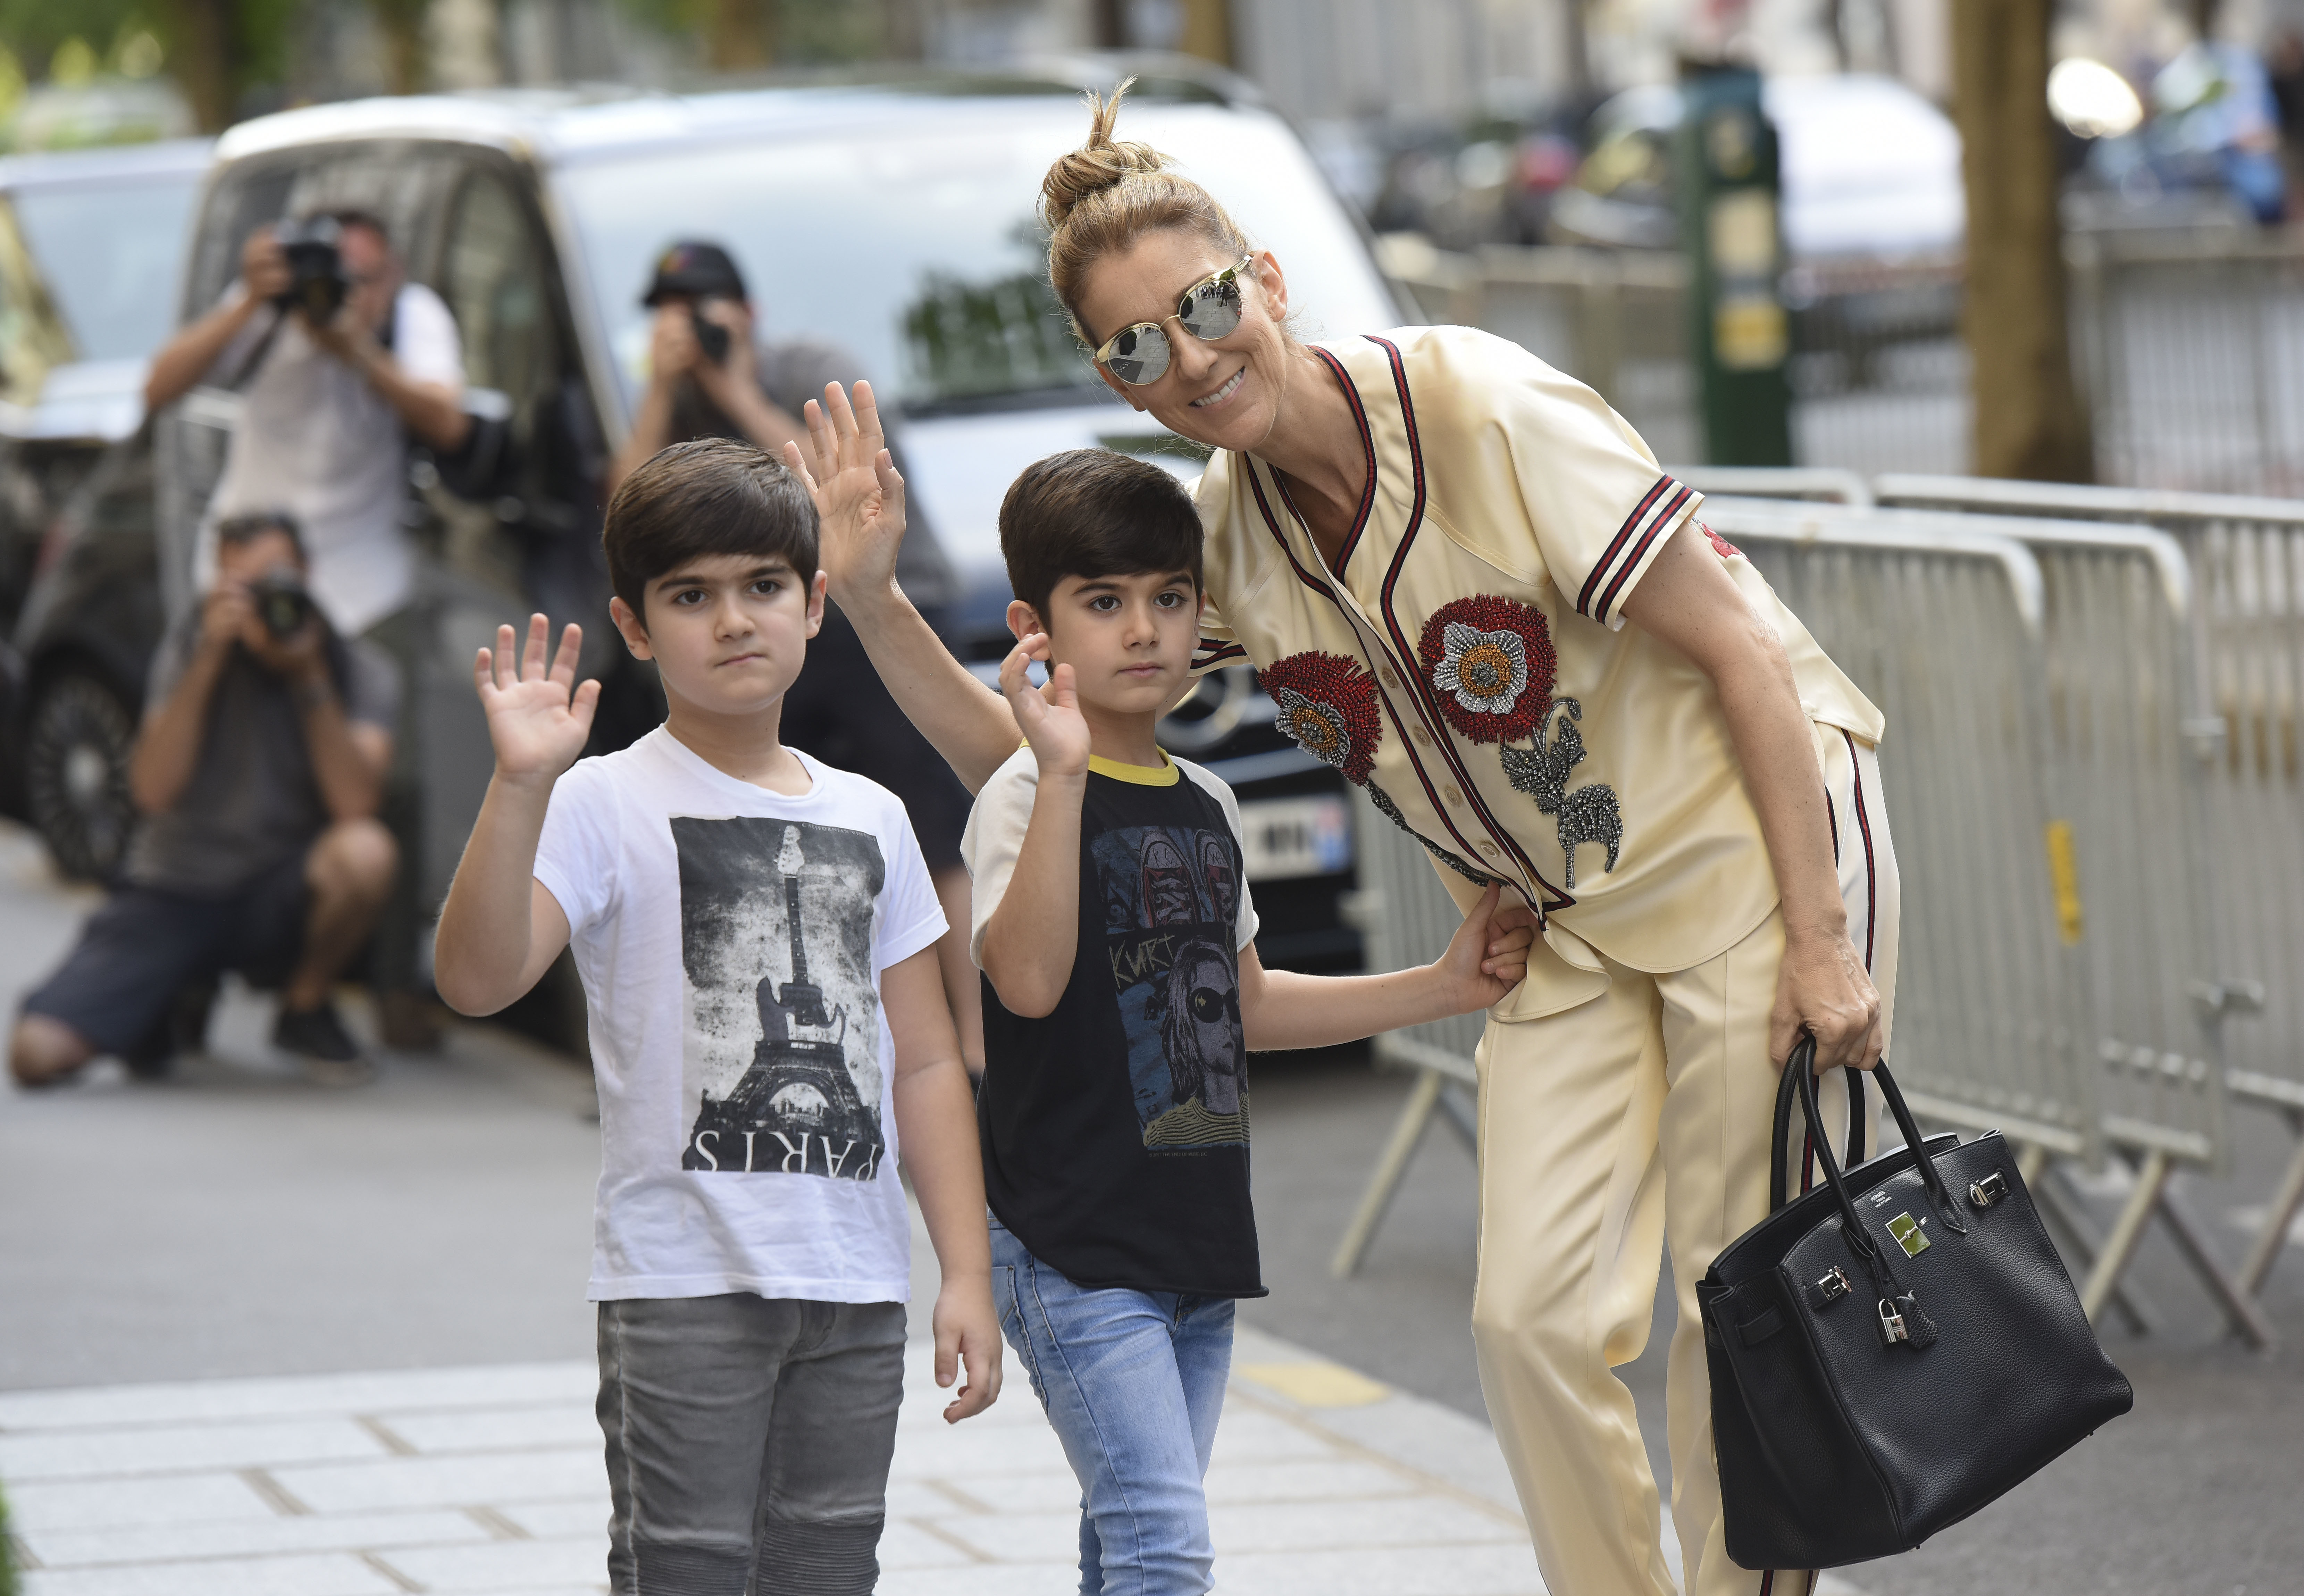 Celine Dion and her twins spotted visiting the optician before returning to the Royal Monceau's hotel in Paris on July 17, 2017.